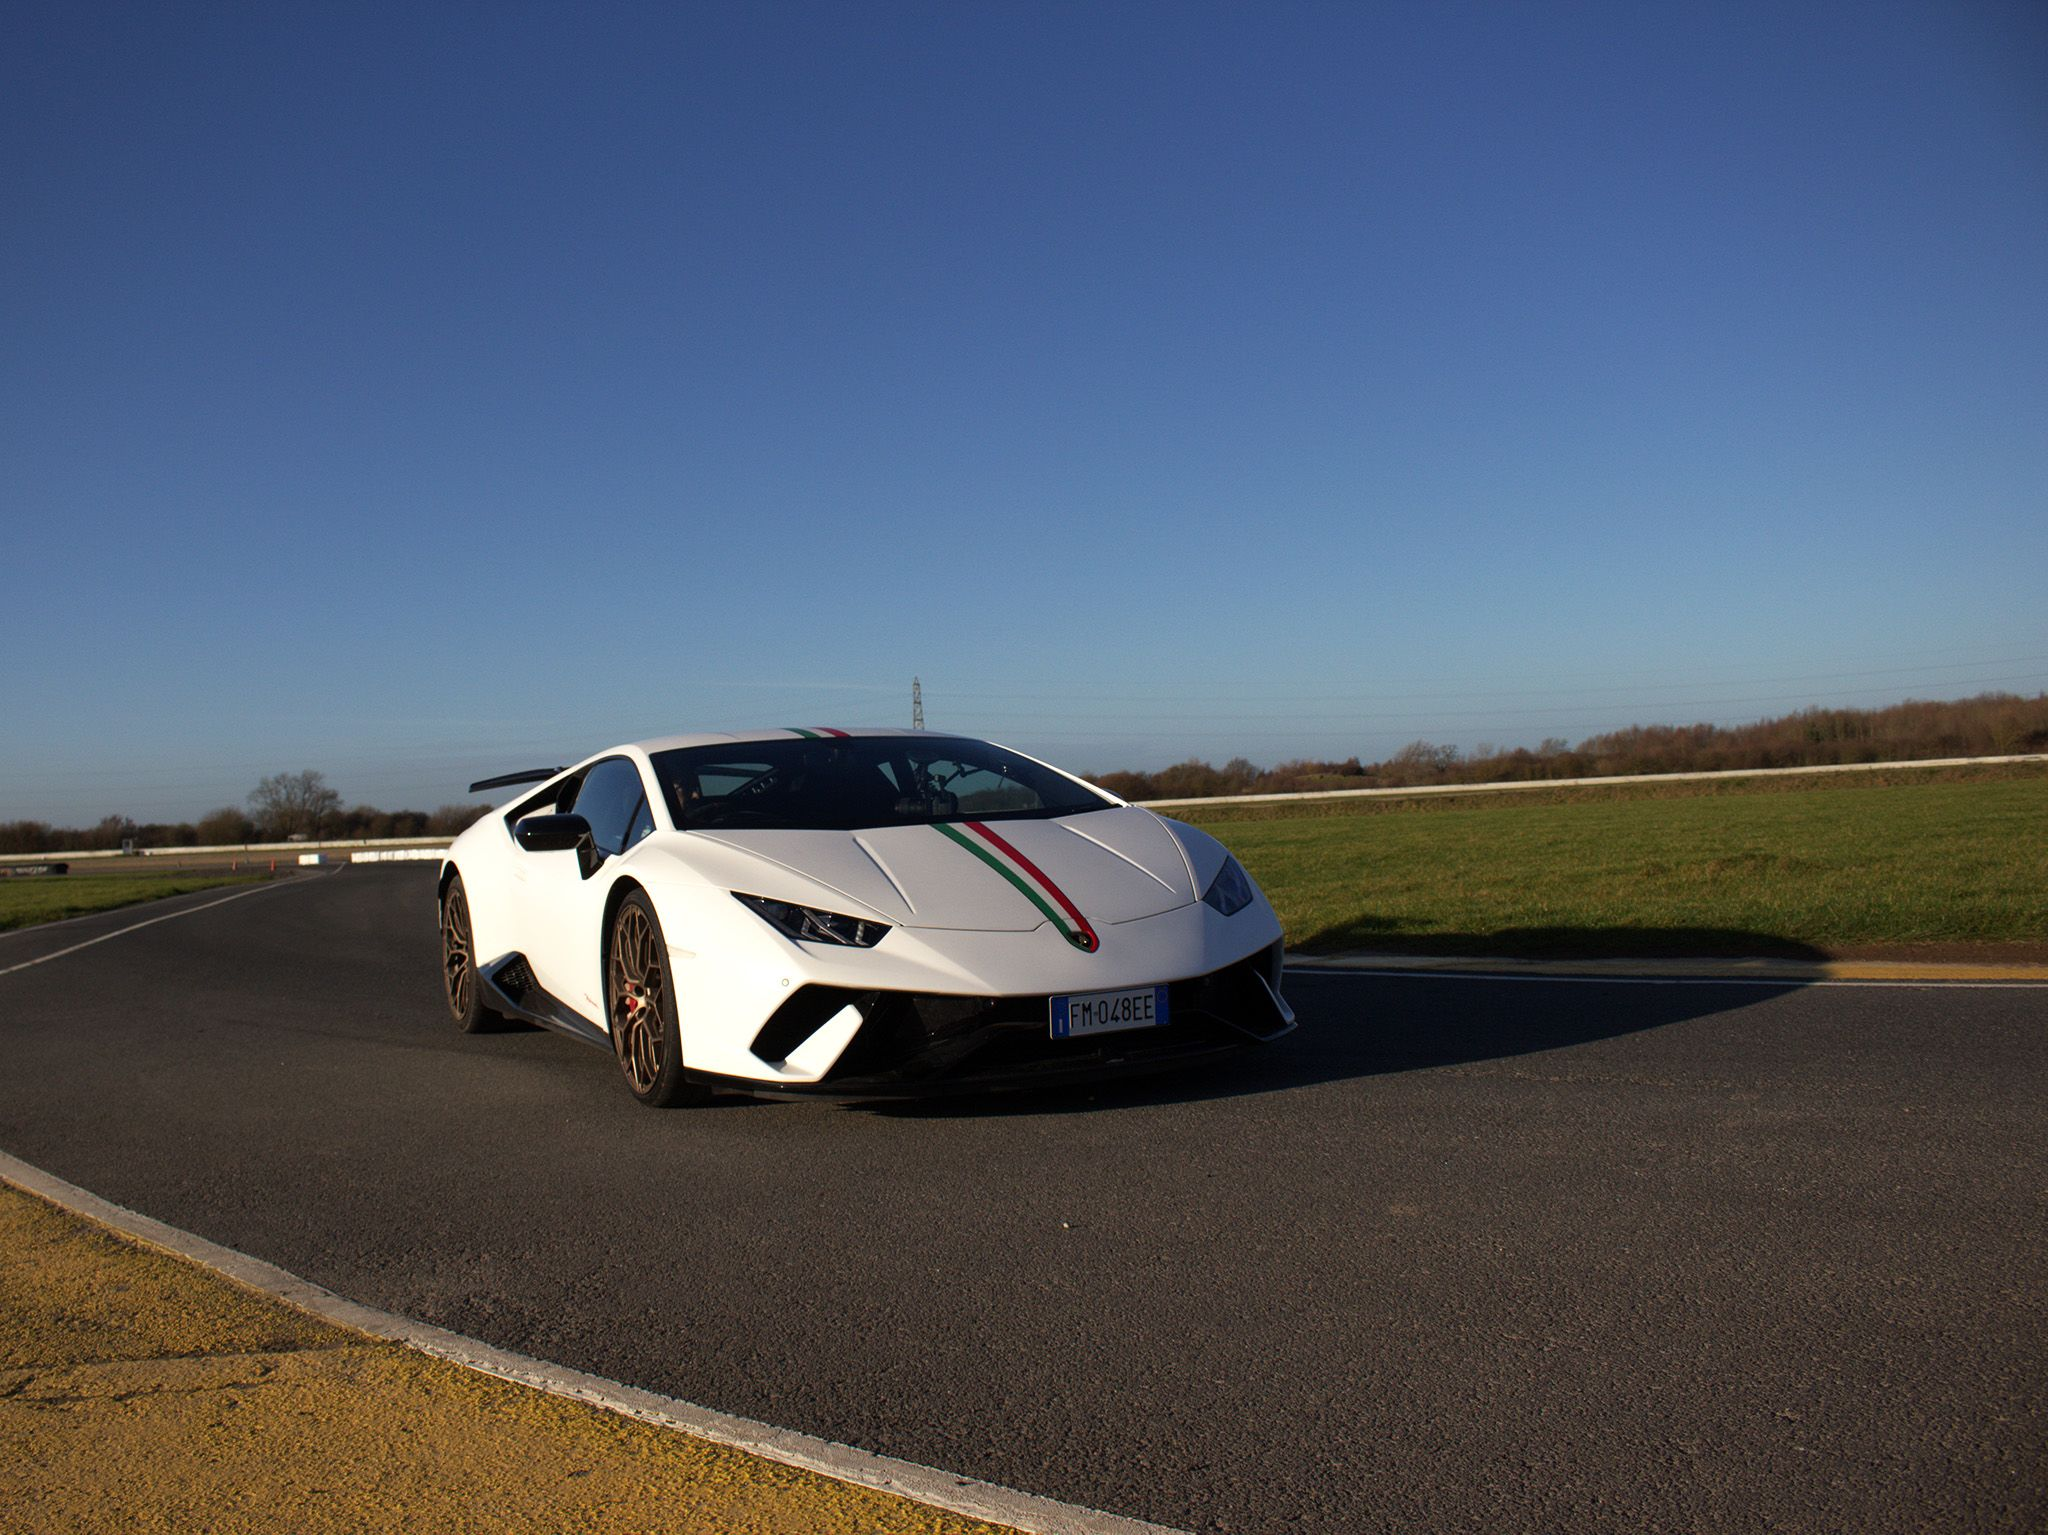 The Lamborghini at track day.  This image is from Scrapyard Supercar. [Photo of the day - ژوئن 2019]